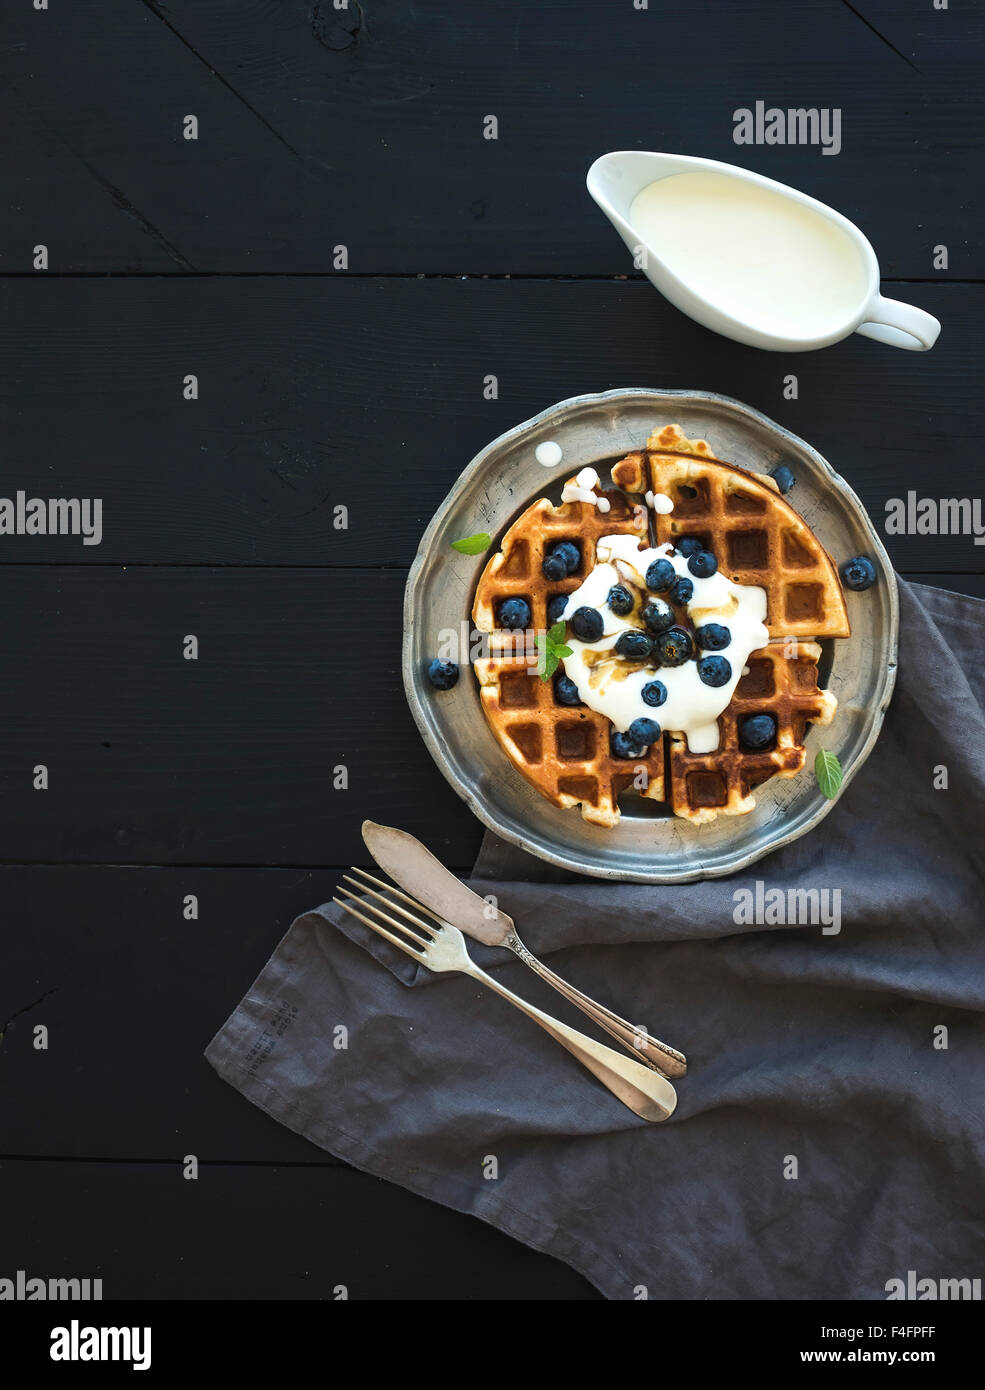 Soft Belgian waffles with blueberries, honey and whipped cream on vintage metal plate over black wooden background, - Stock Image